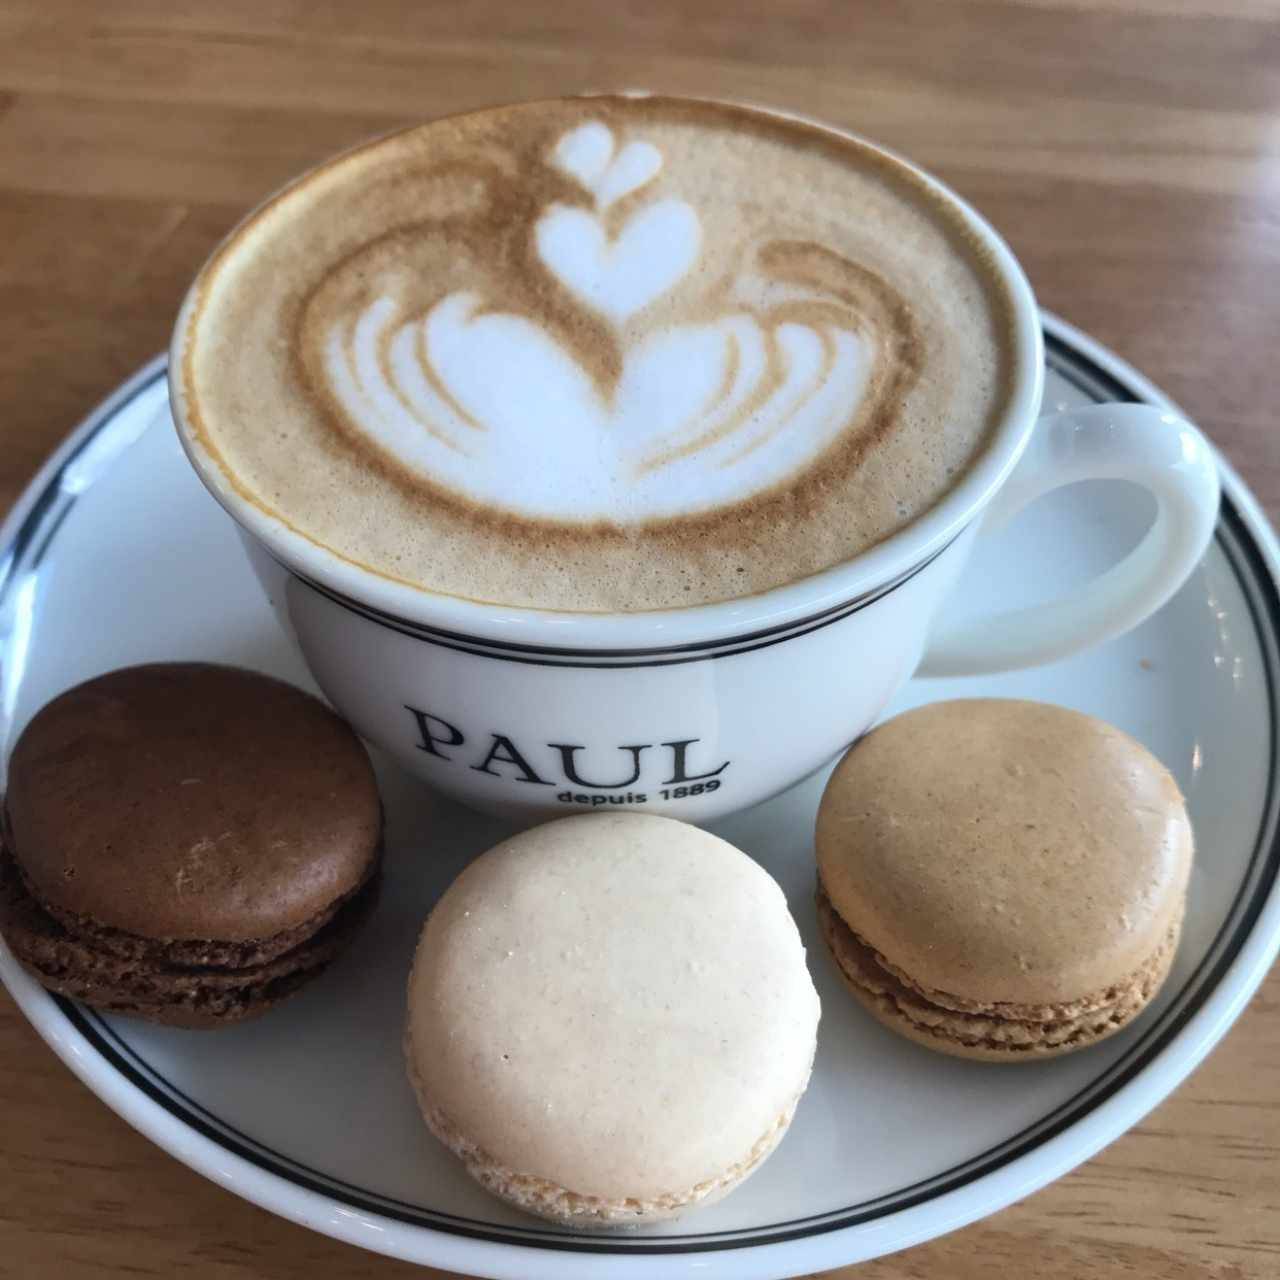 Capuccino y macarons